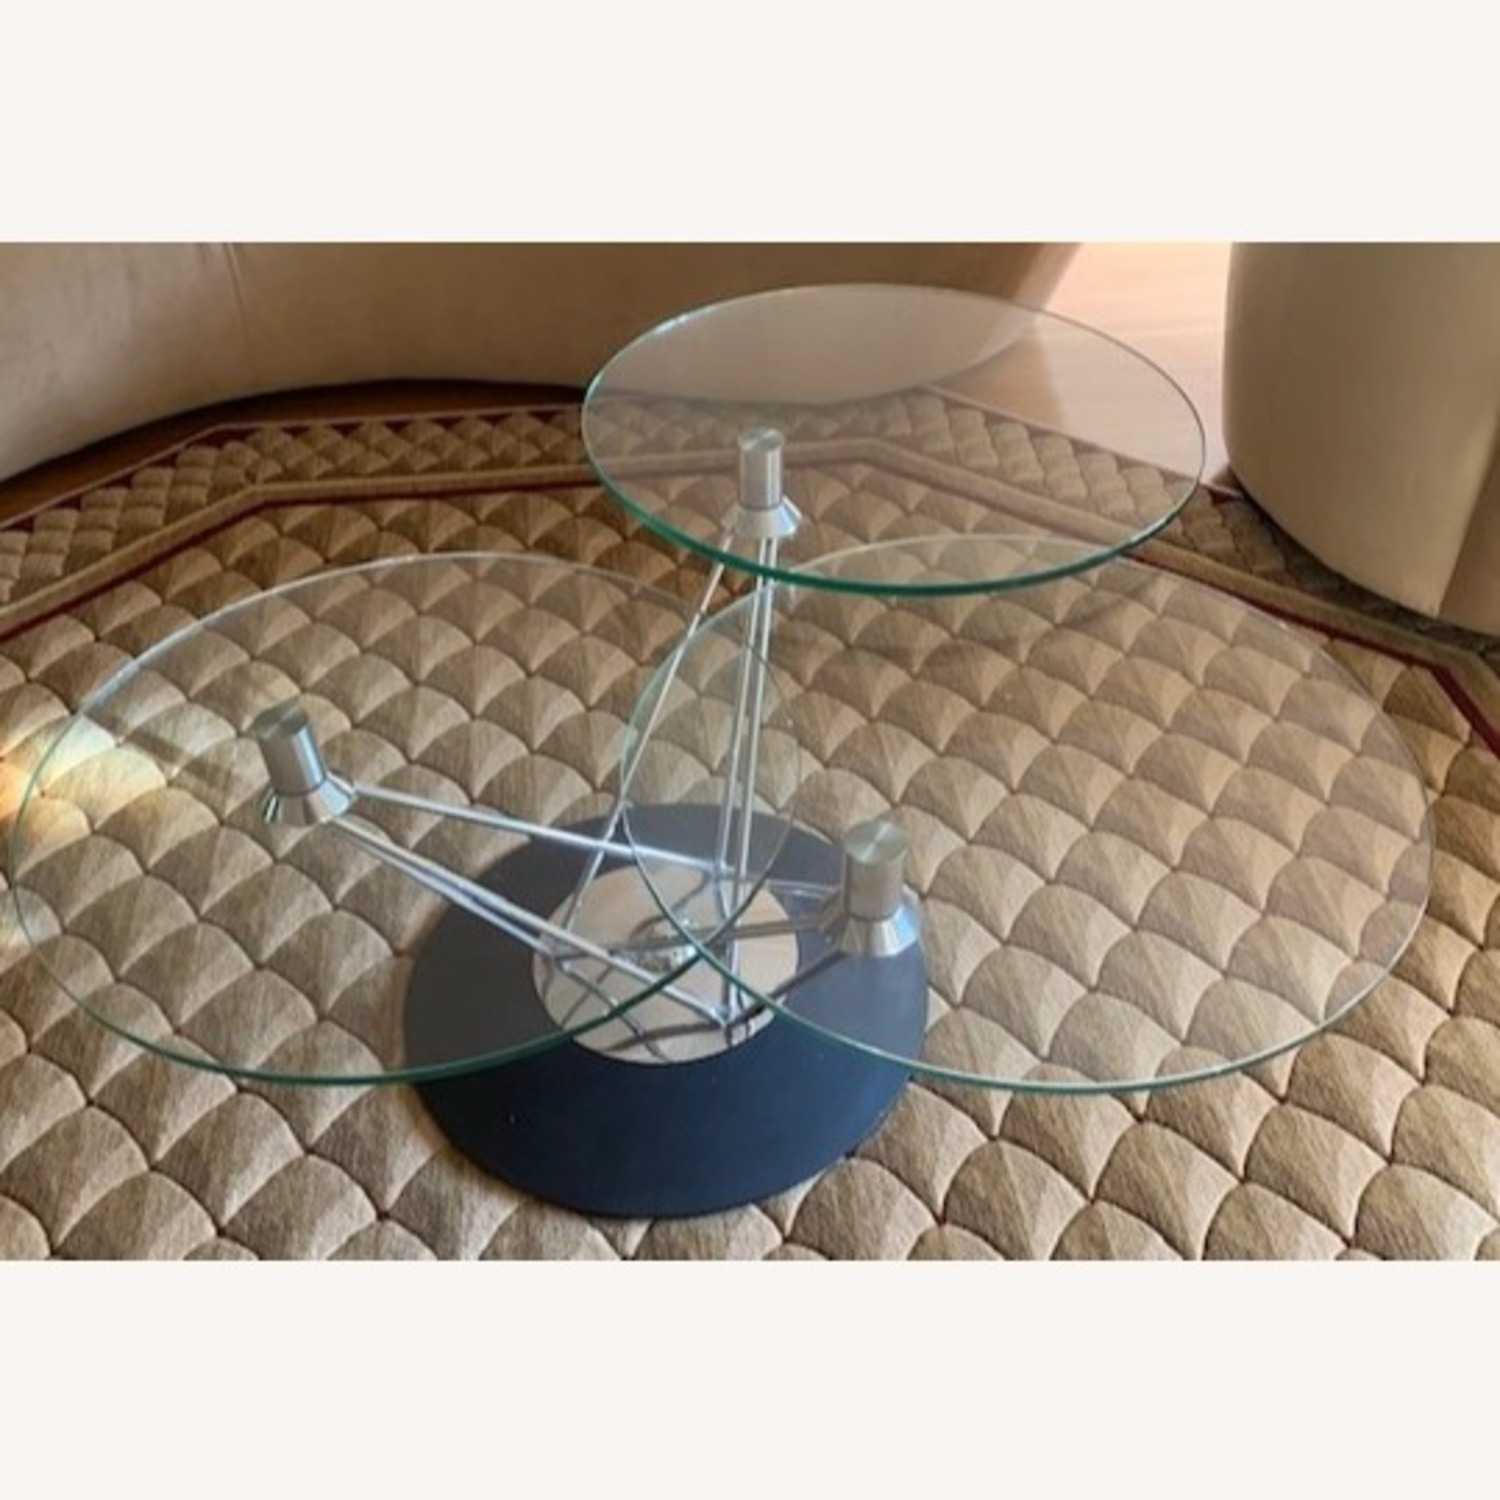 Steuben Glass Tempered Designer Collection Coffee Table - image-2